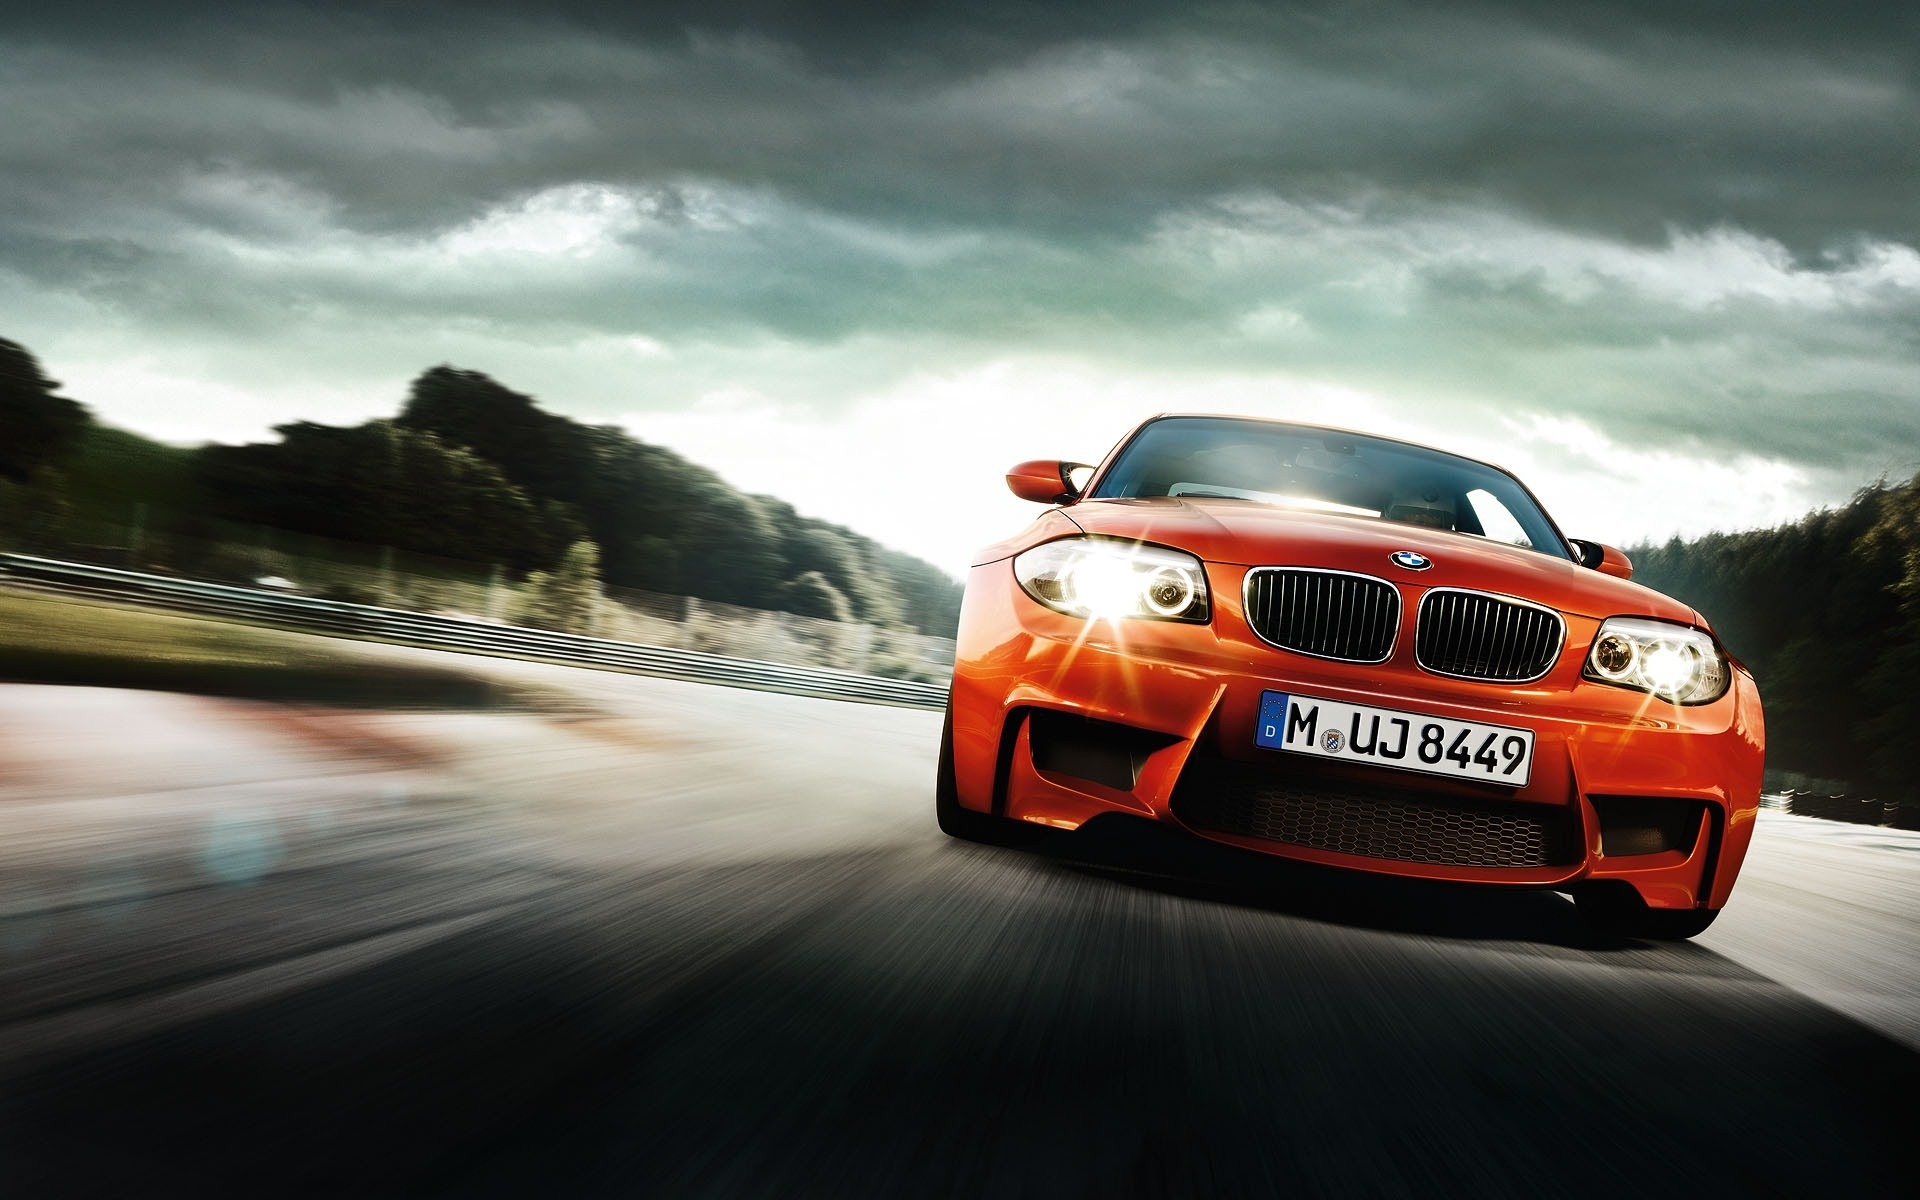 Wallpaper Bmw Red Cool Car 1920x1200 Hd Picture Image